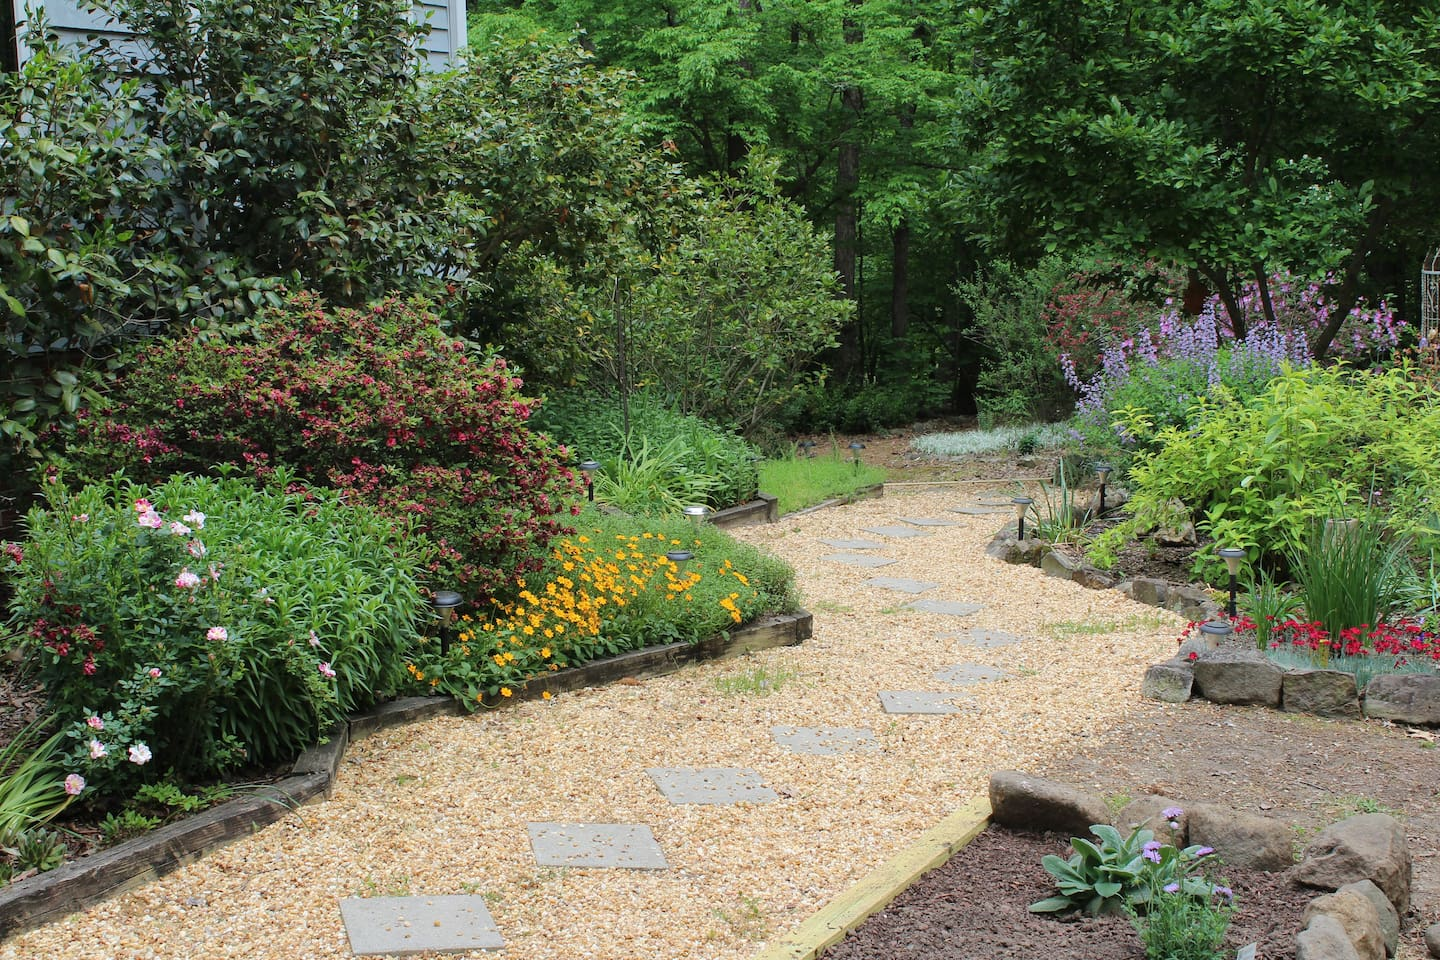 Garden path to entrance showing Spring flowers